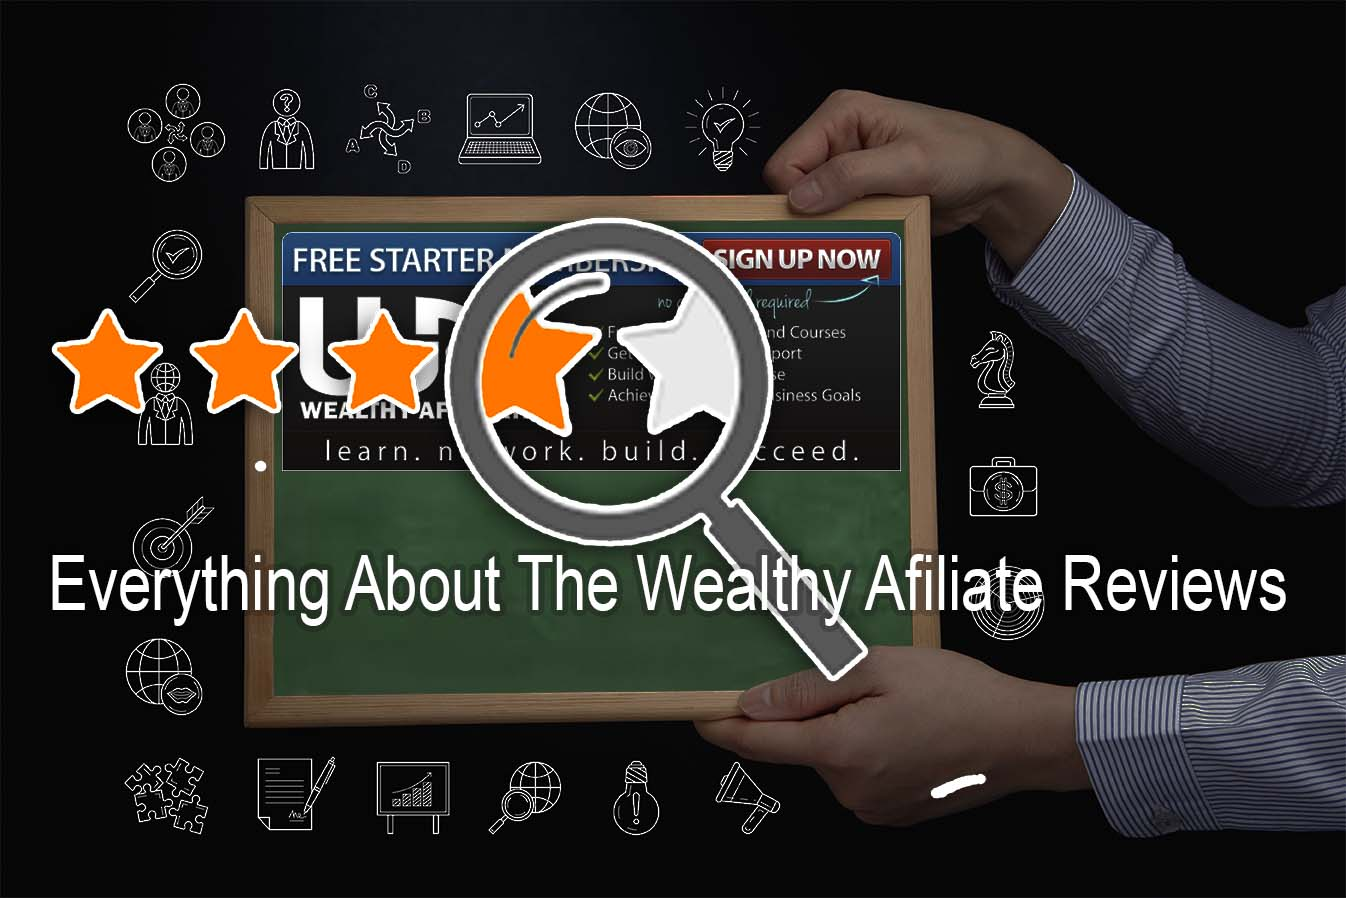 Everything About The Wealthy Affiliate Reviews